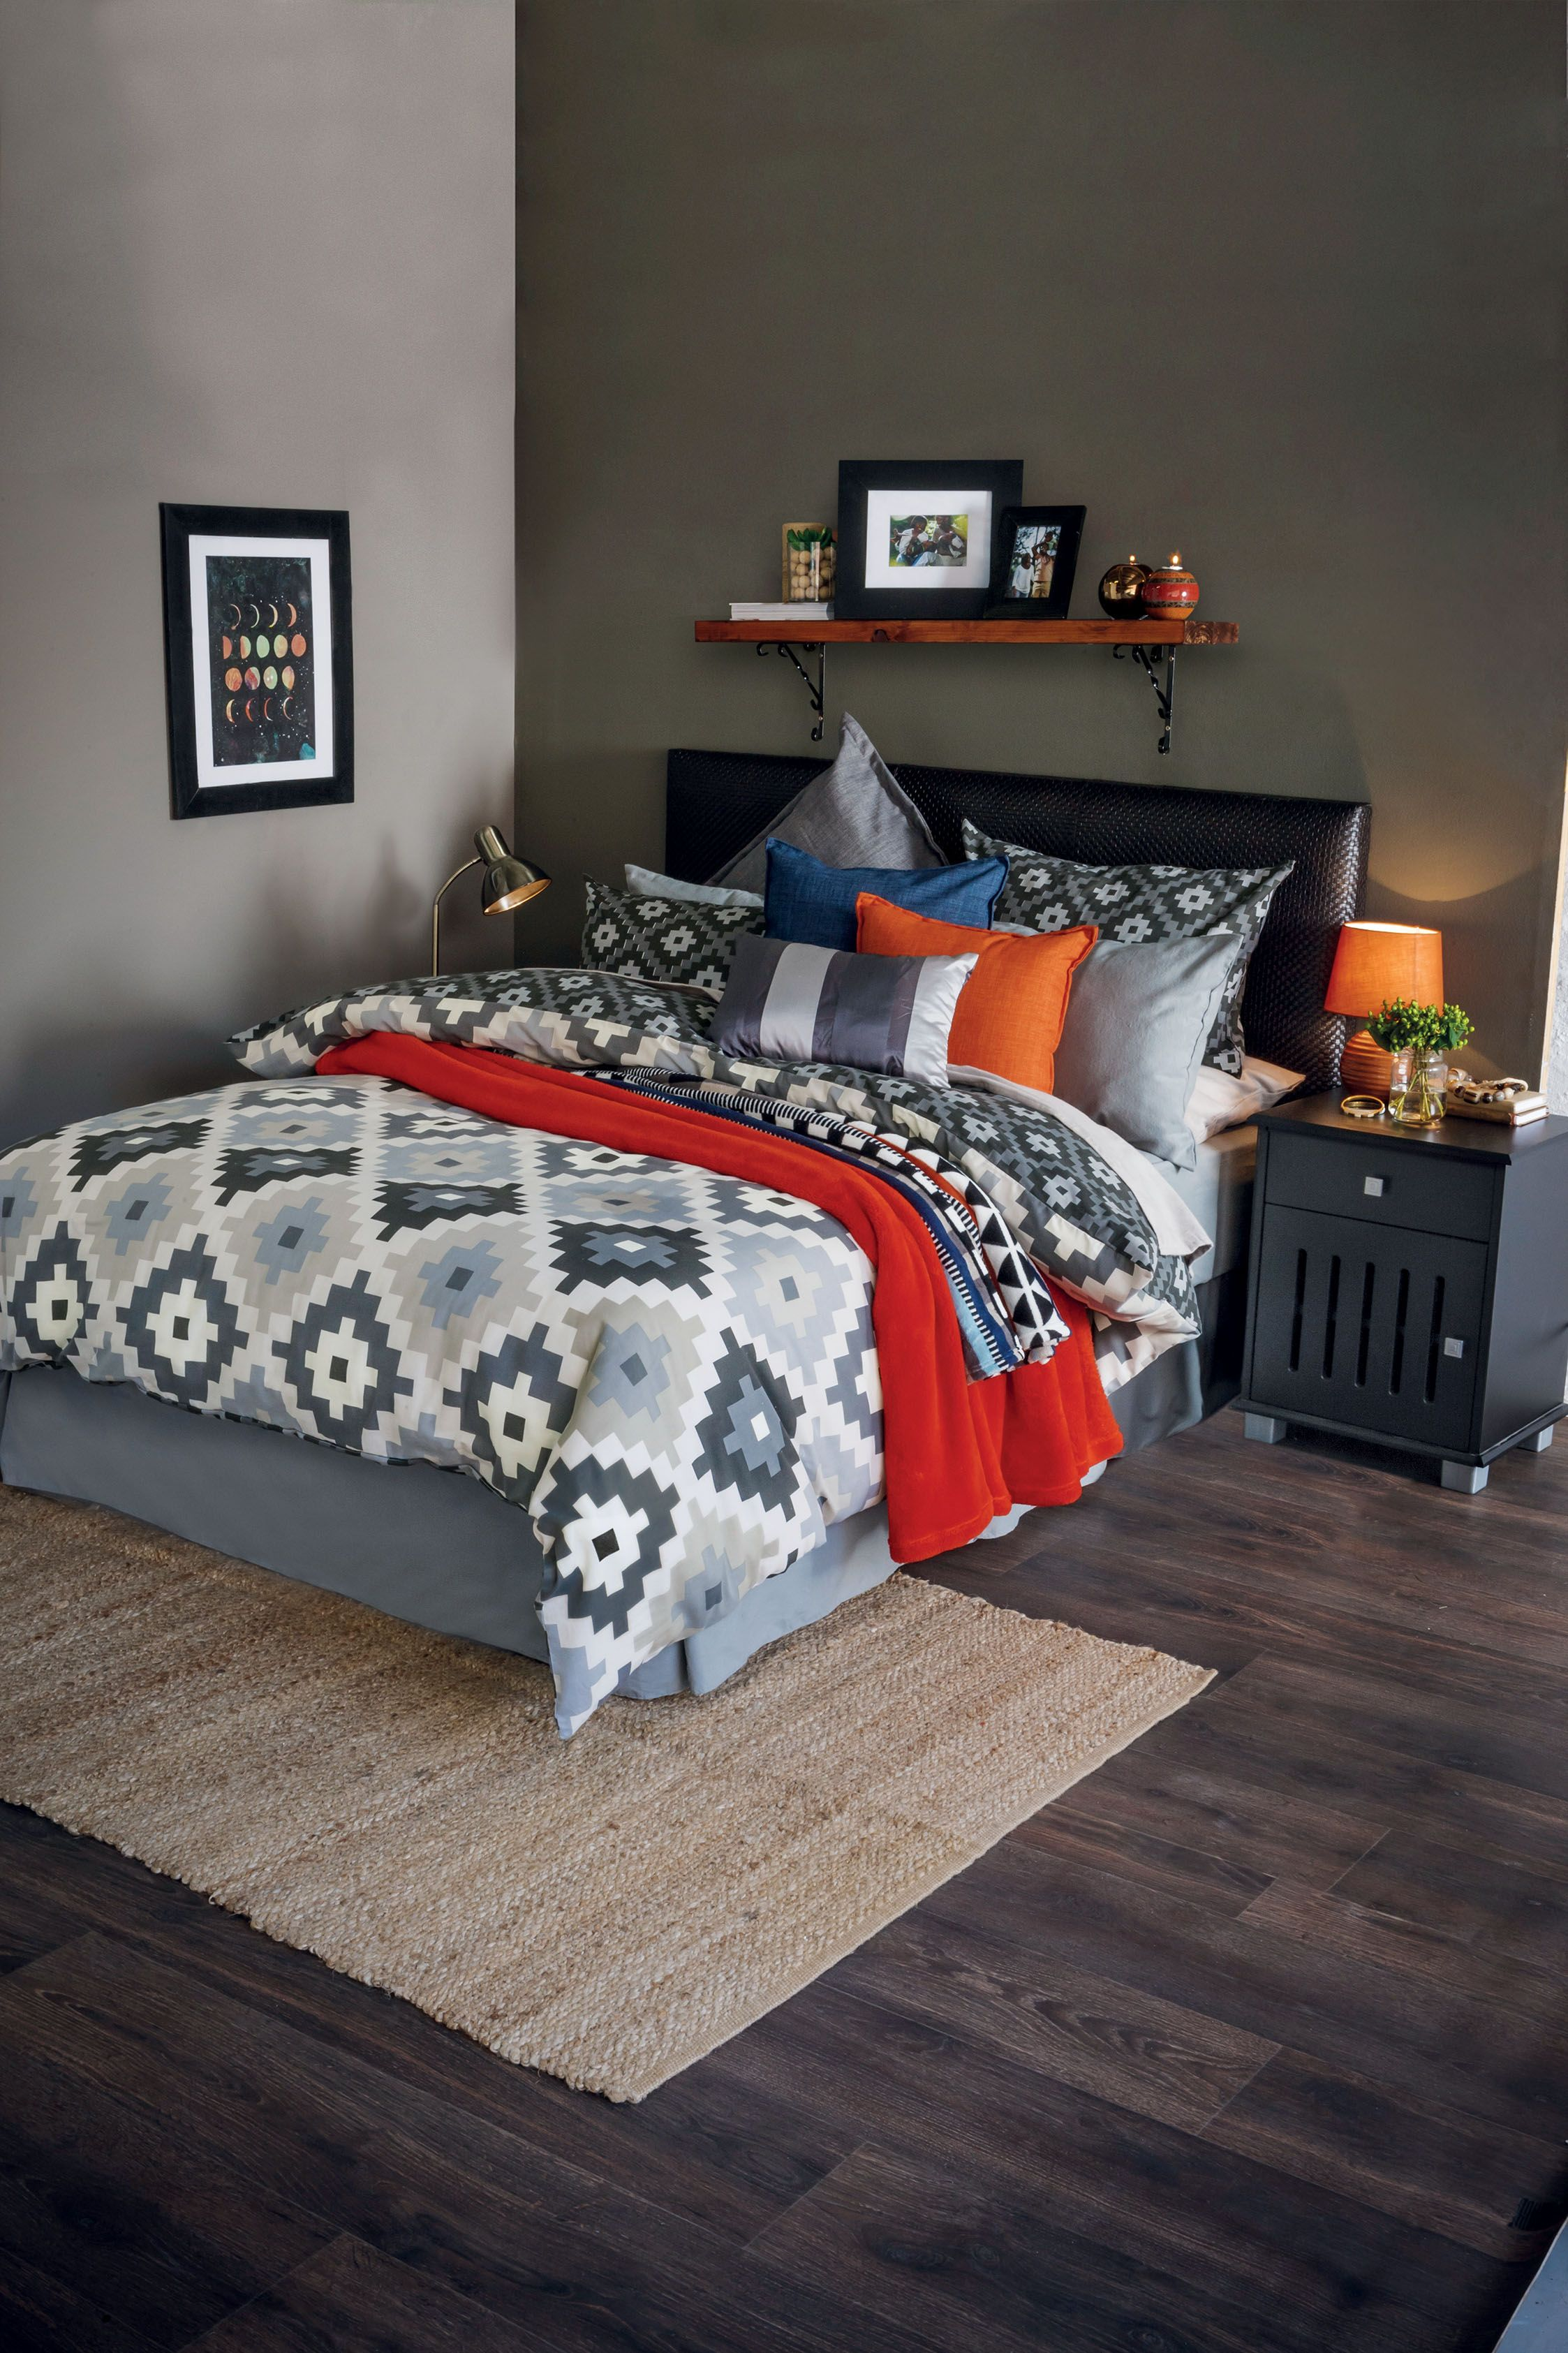 visit www.mrpricehome.com to view more great bedroom ideas ...